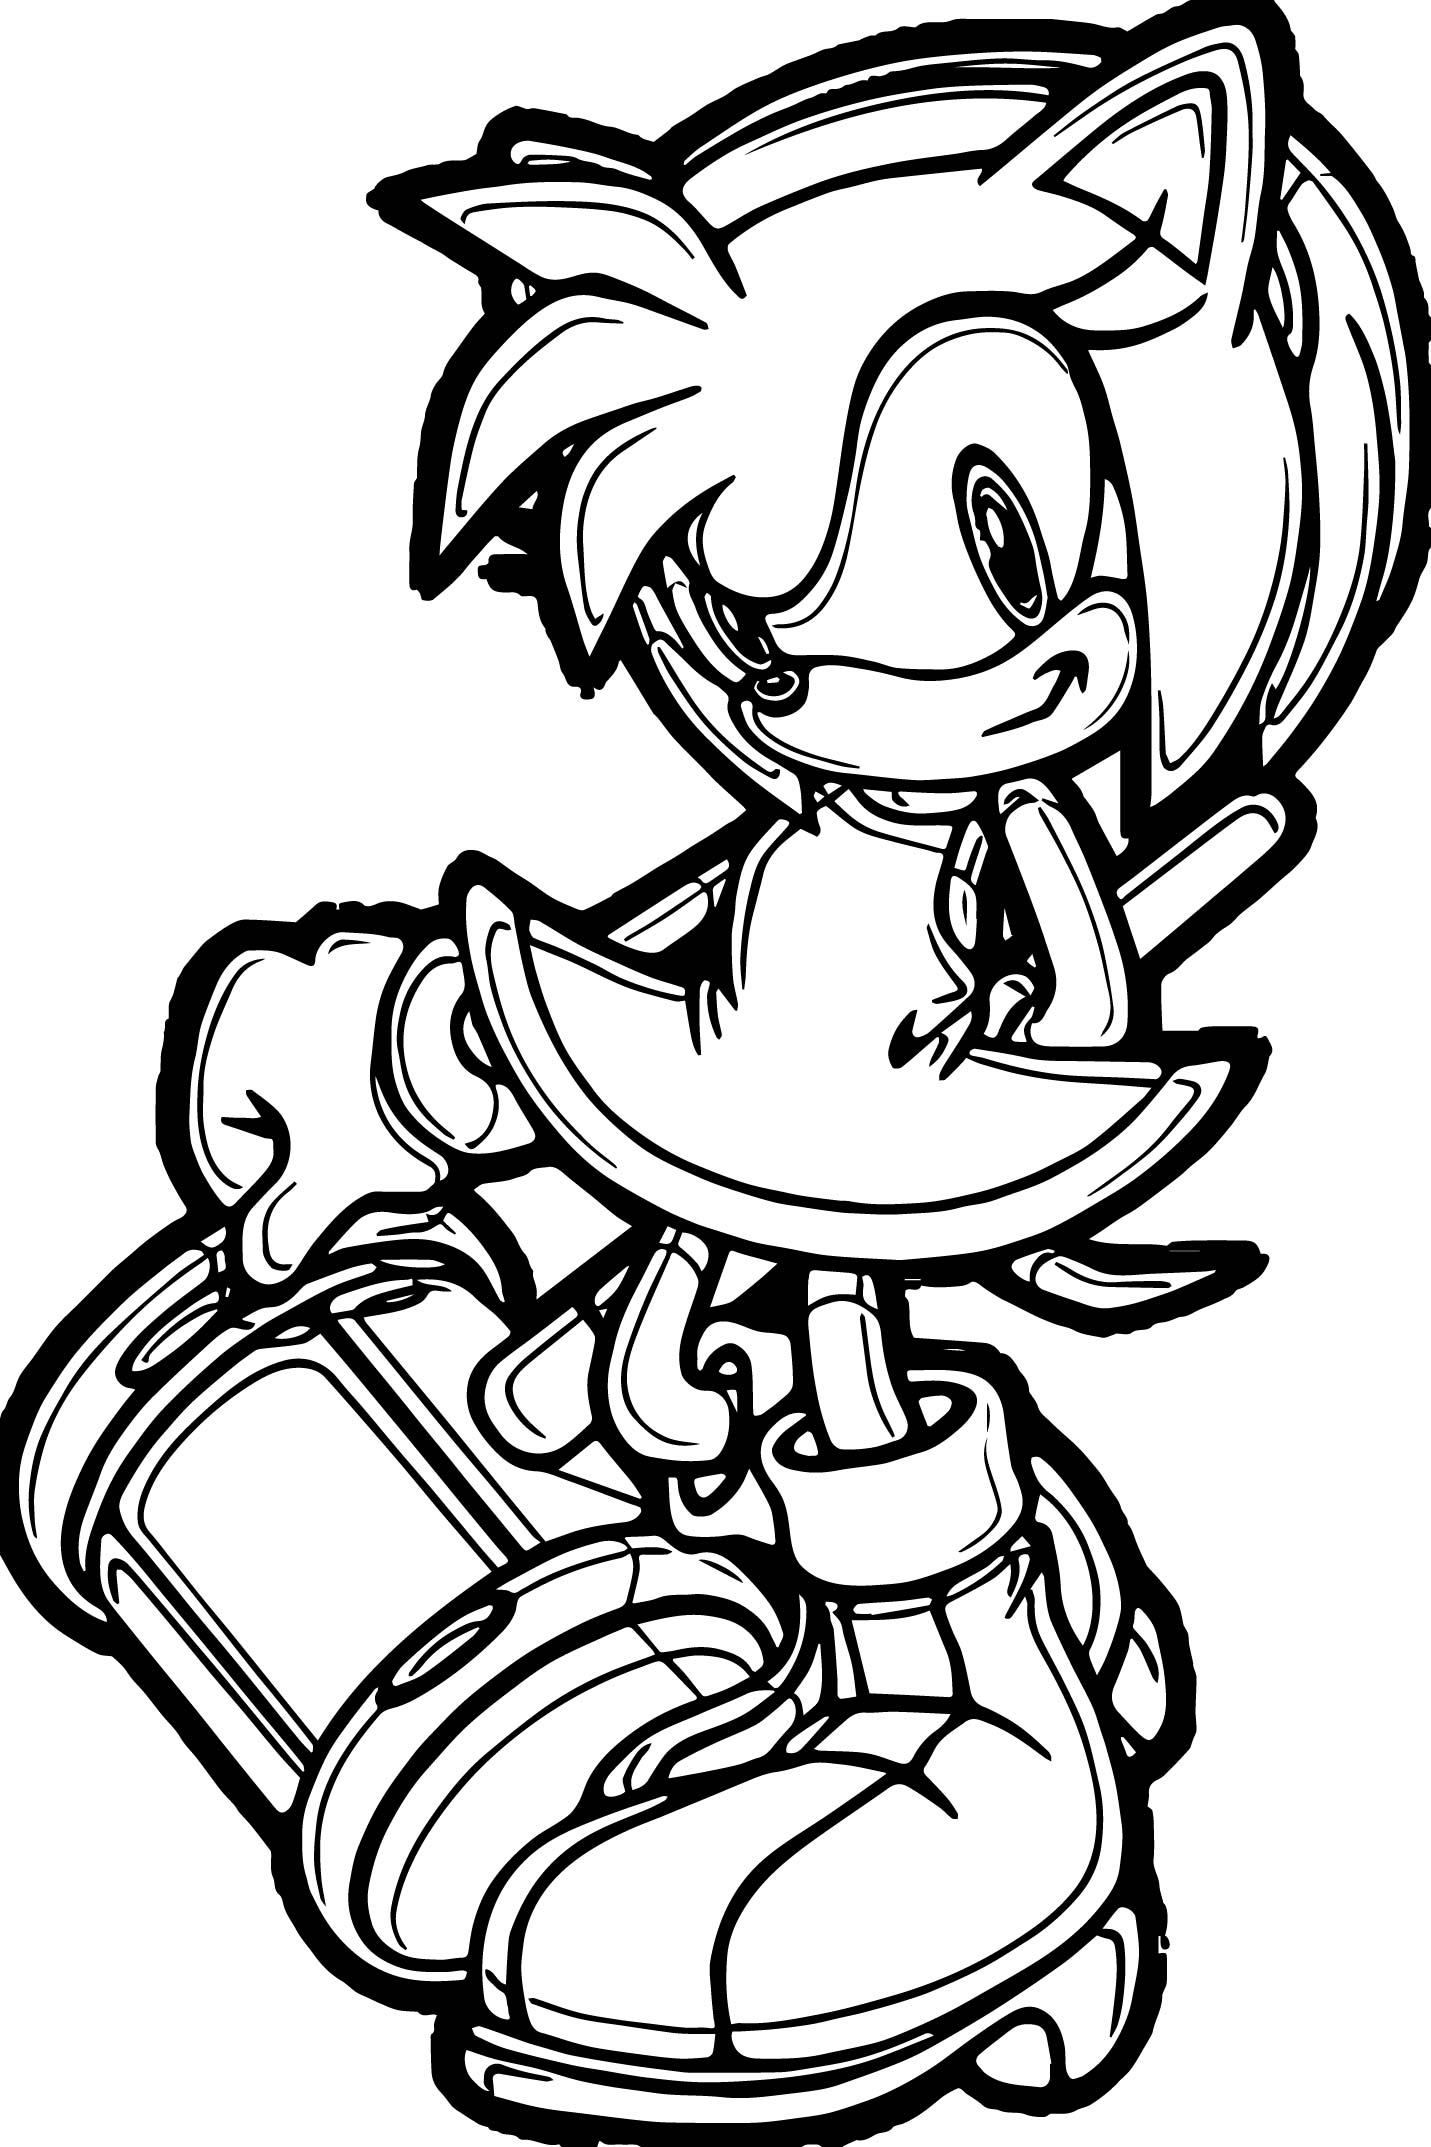 amy rose style coloring page wecoloringpage